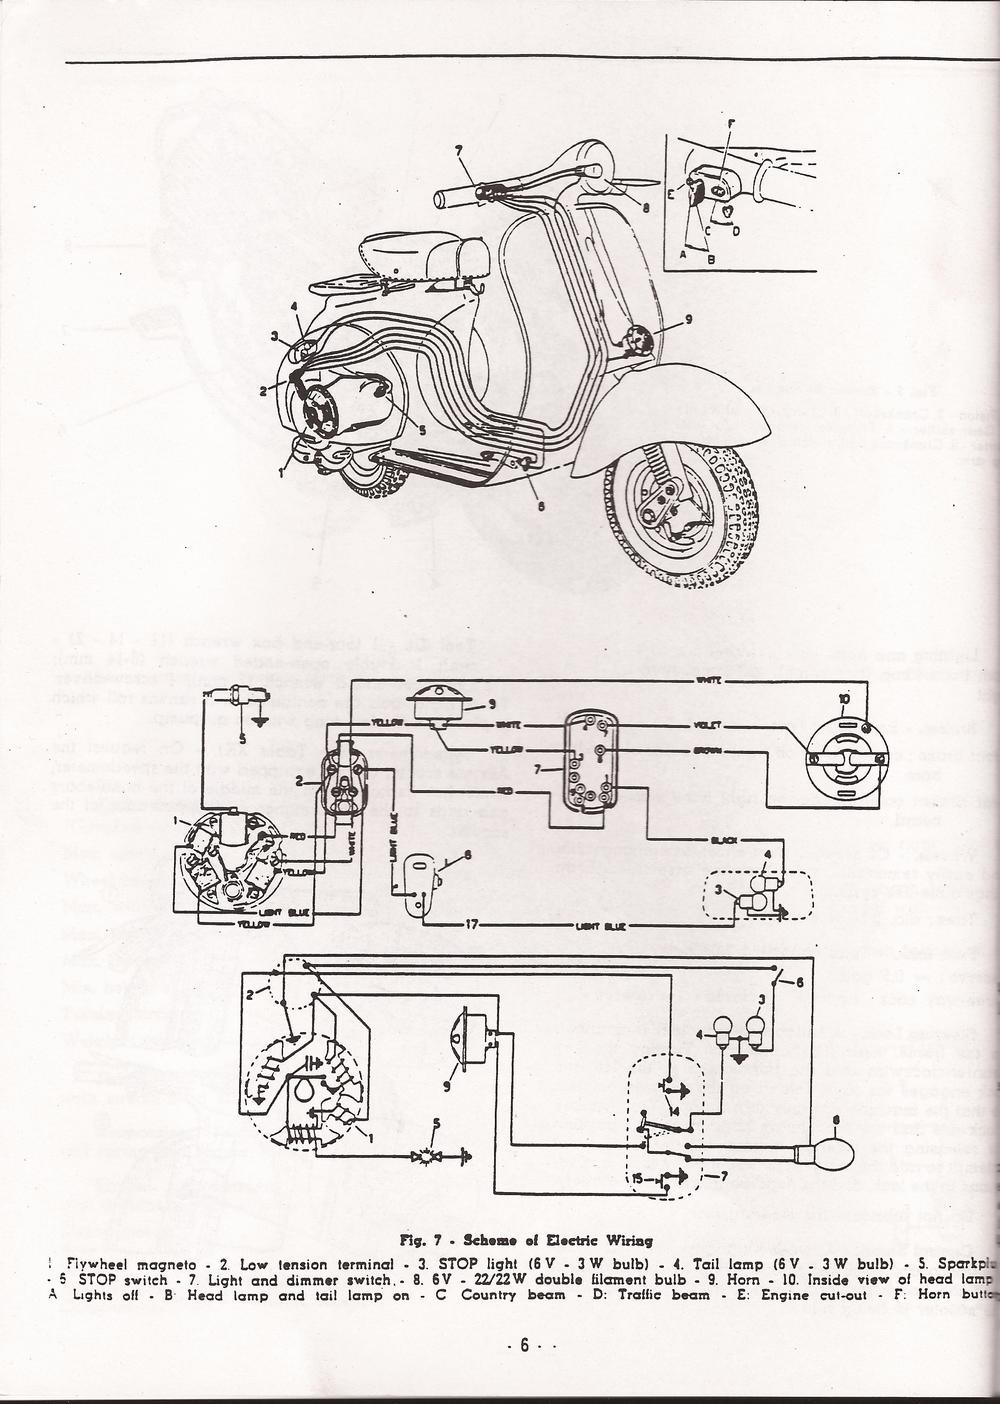 Vespa Allstate Wiring Diagram Great Engine Schematic Corsa 788 94493 Va9t 1958 Kyle S Scooter Shop Rh Kylesscootershop Com Chetak 1984